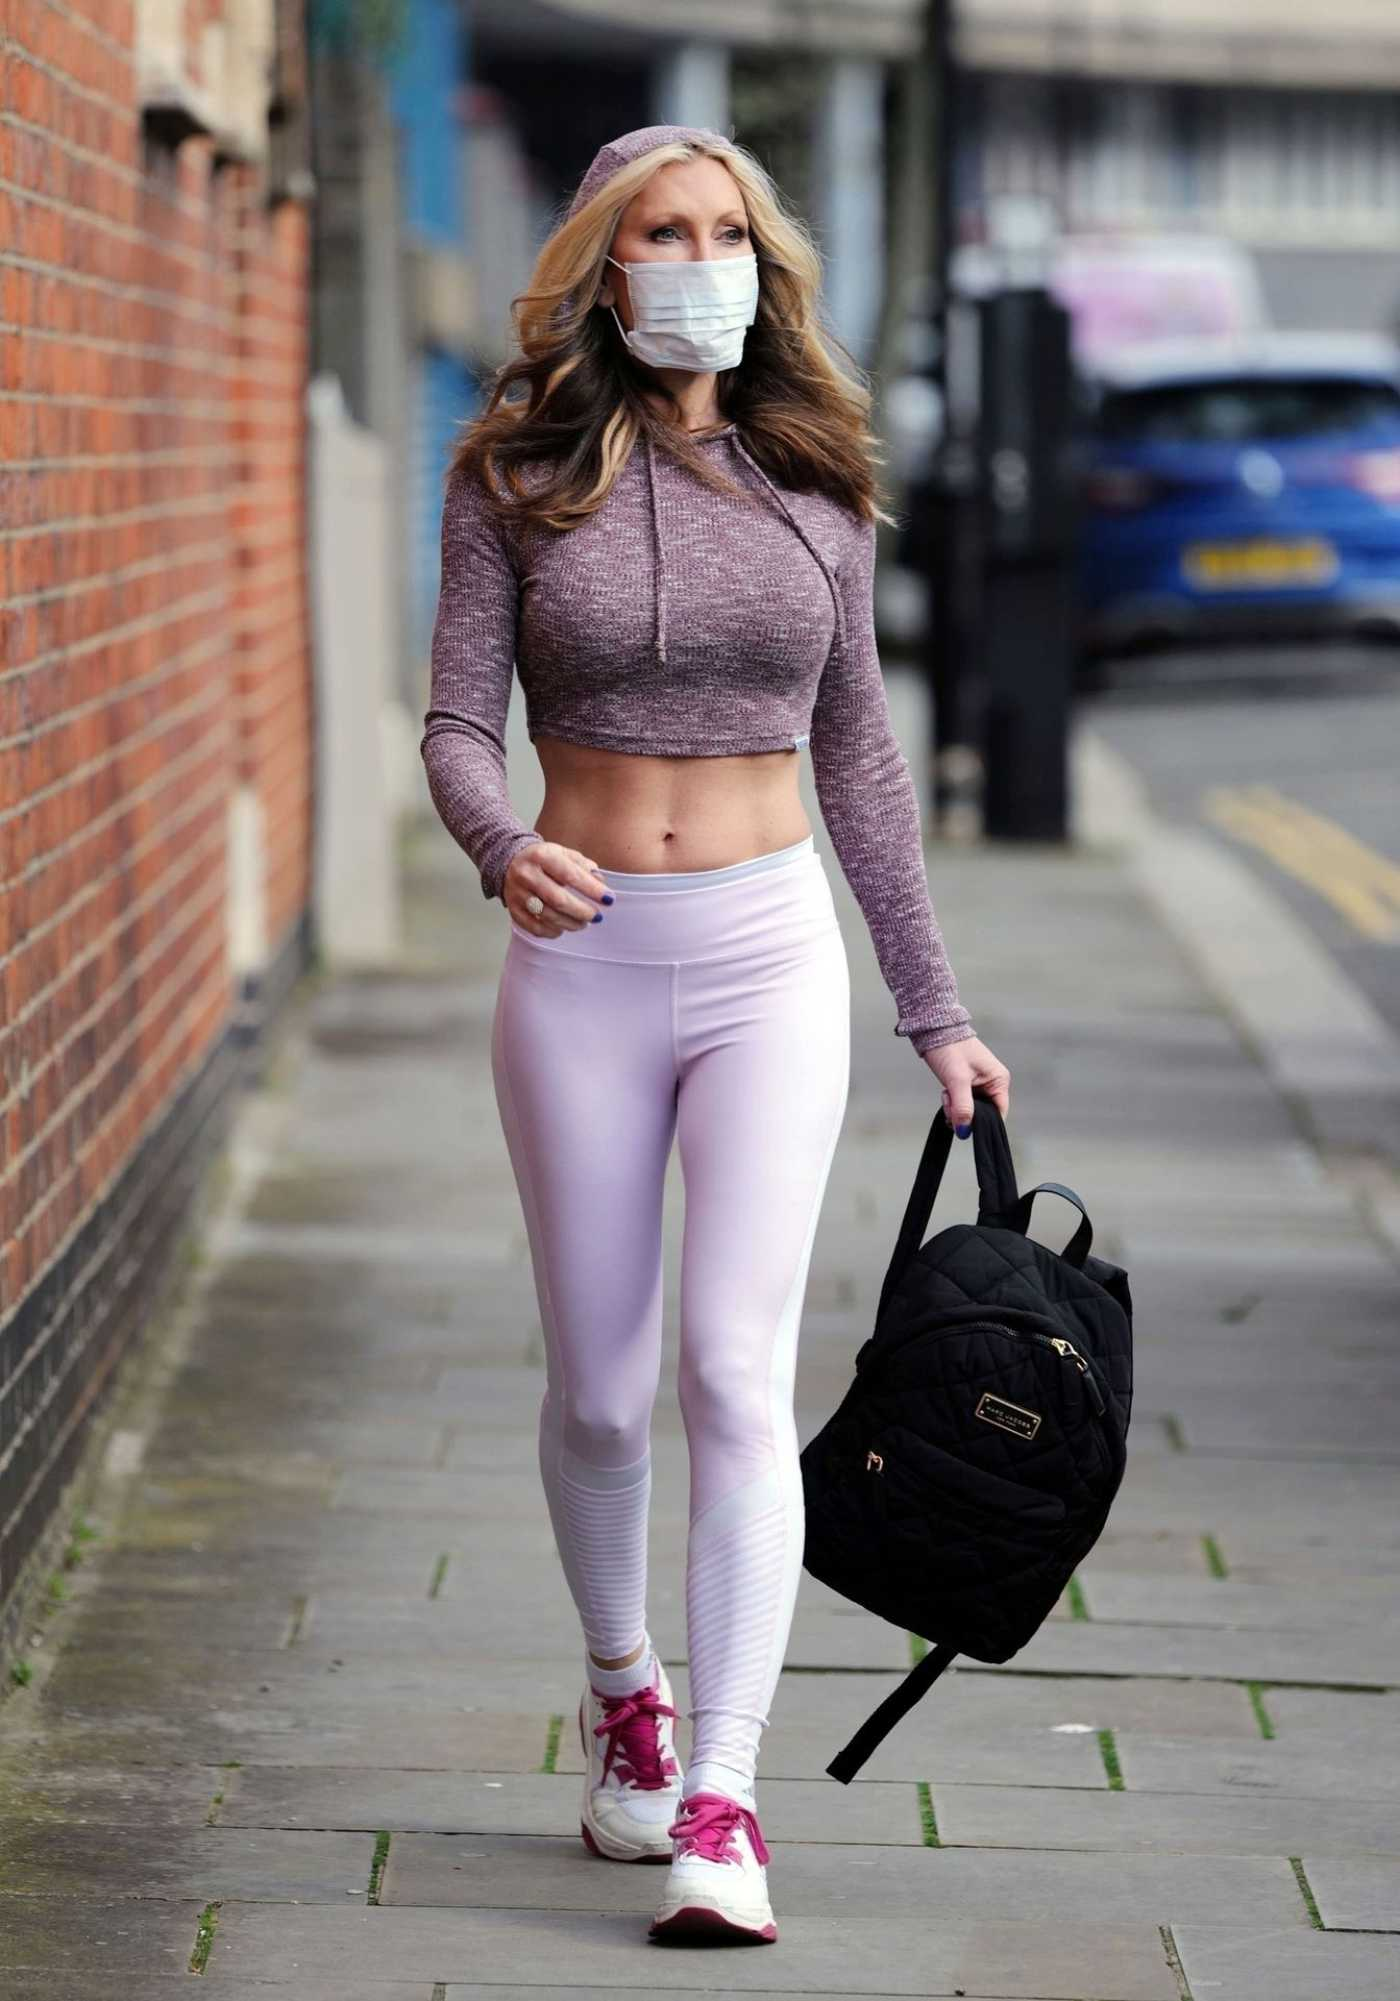 Caprice Bourret in a White Leggings Was Seen Out in London 03/17/2020